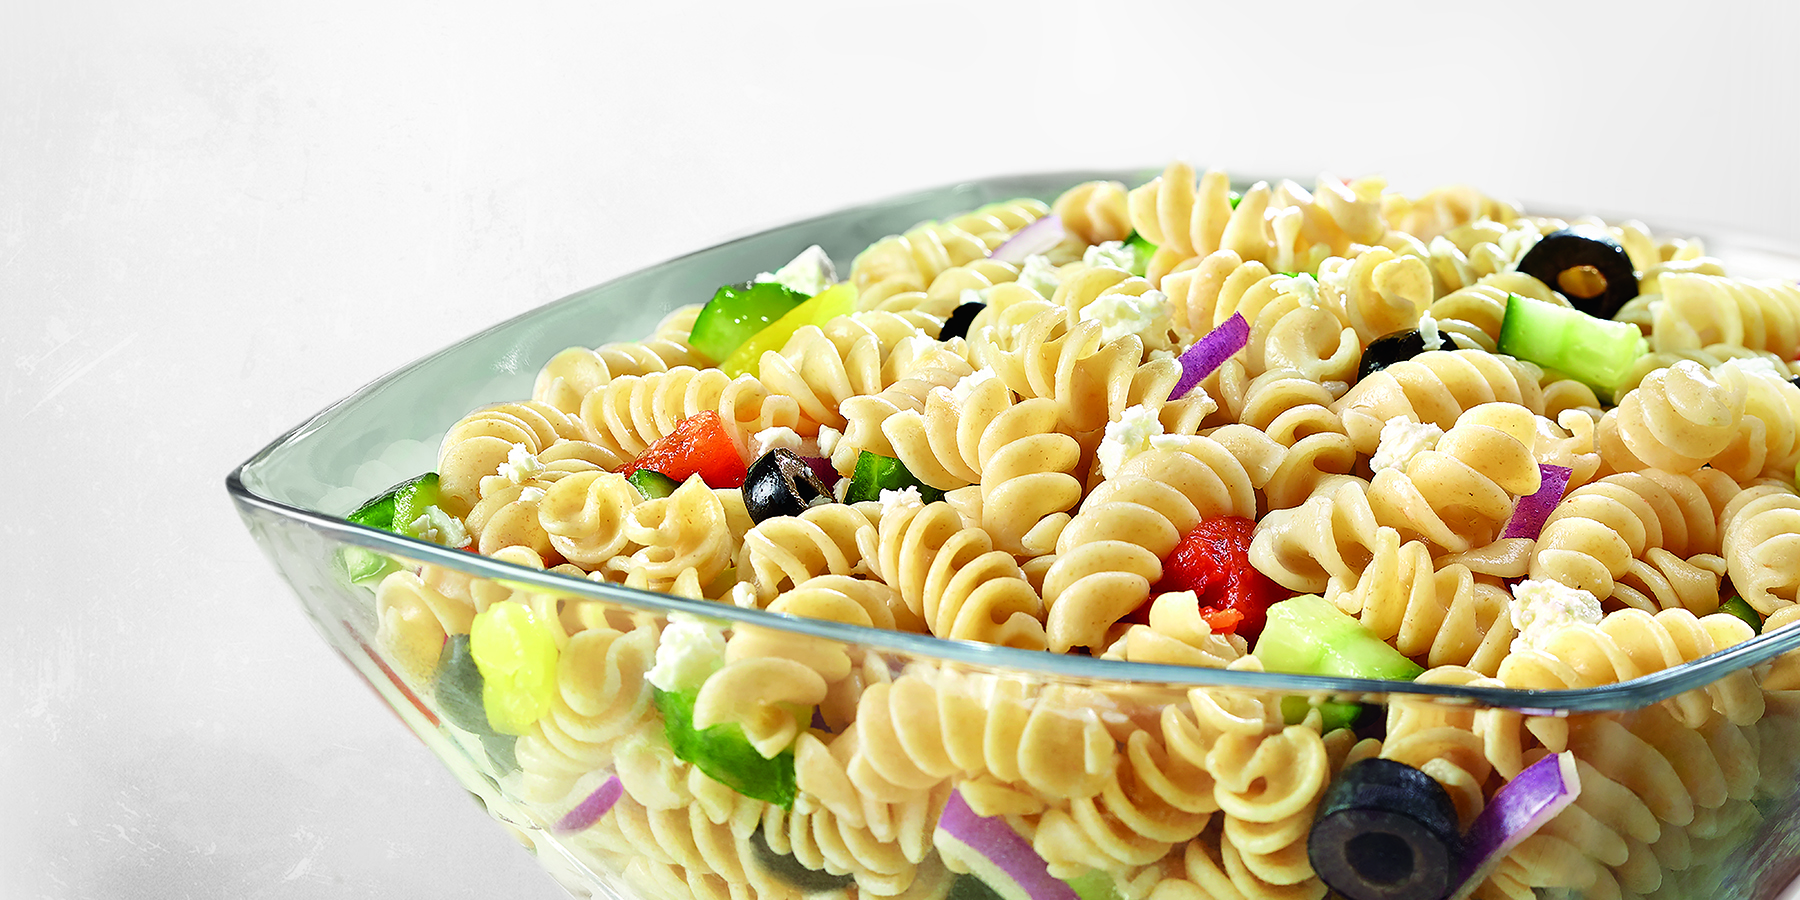 Anthony's Greek Pasta Salad with Rotini